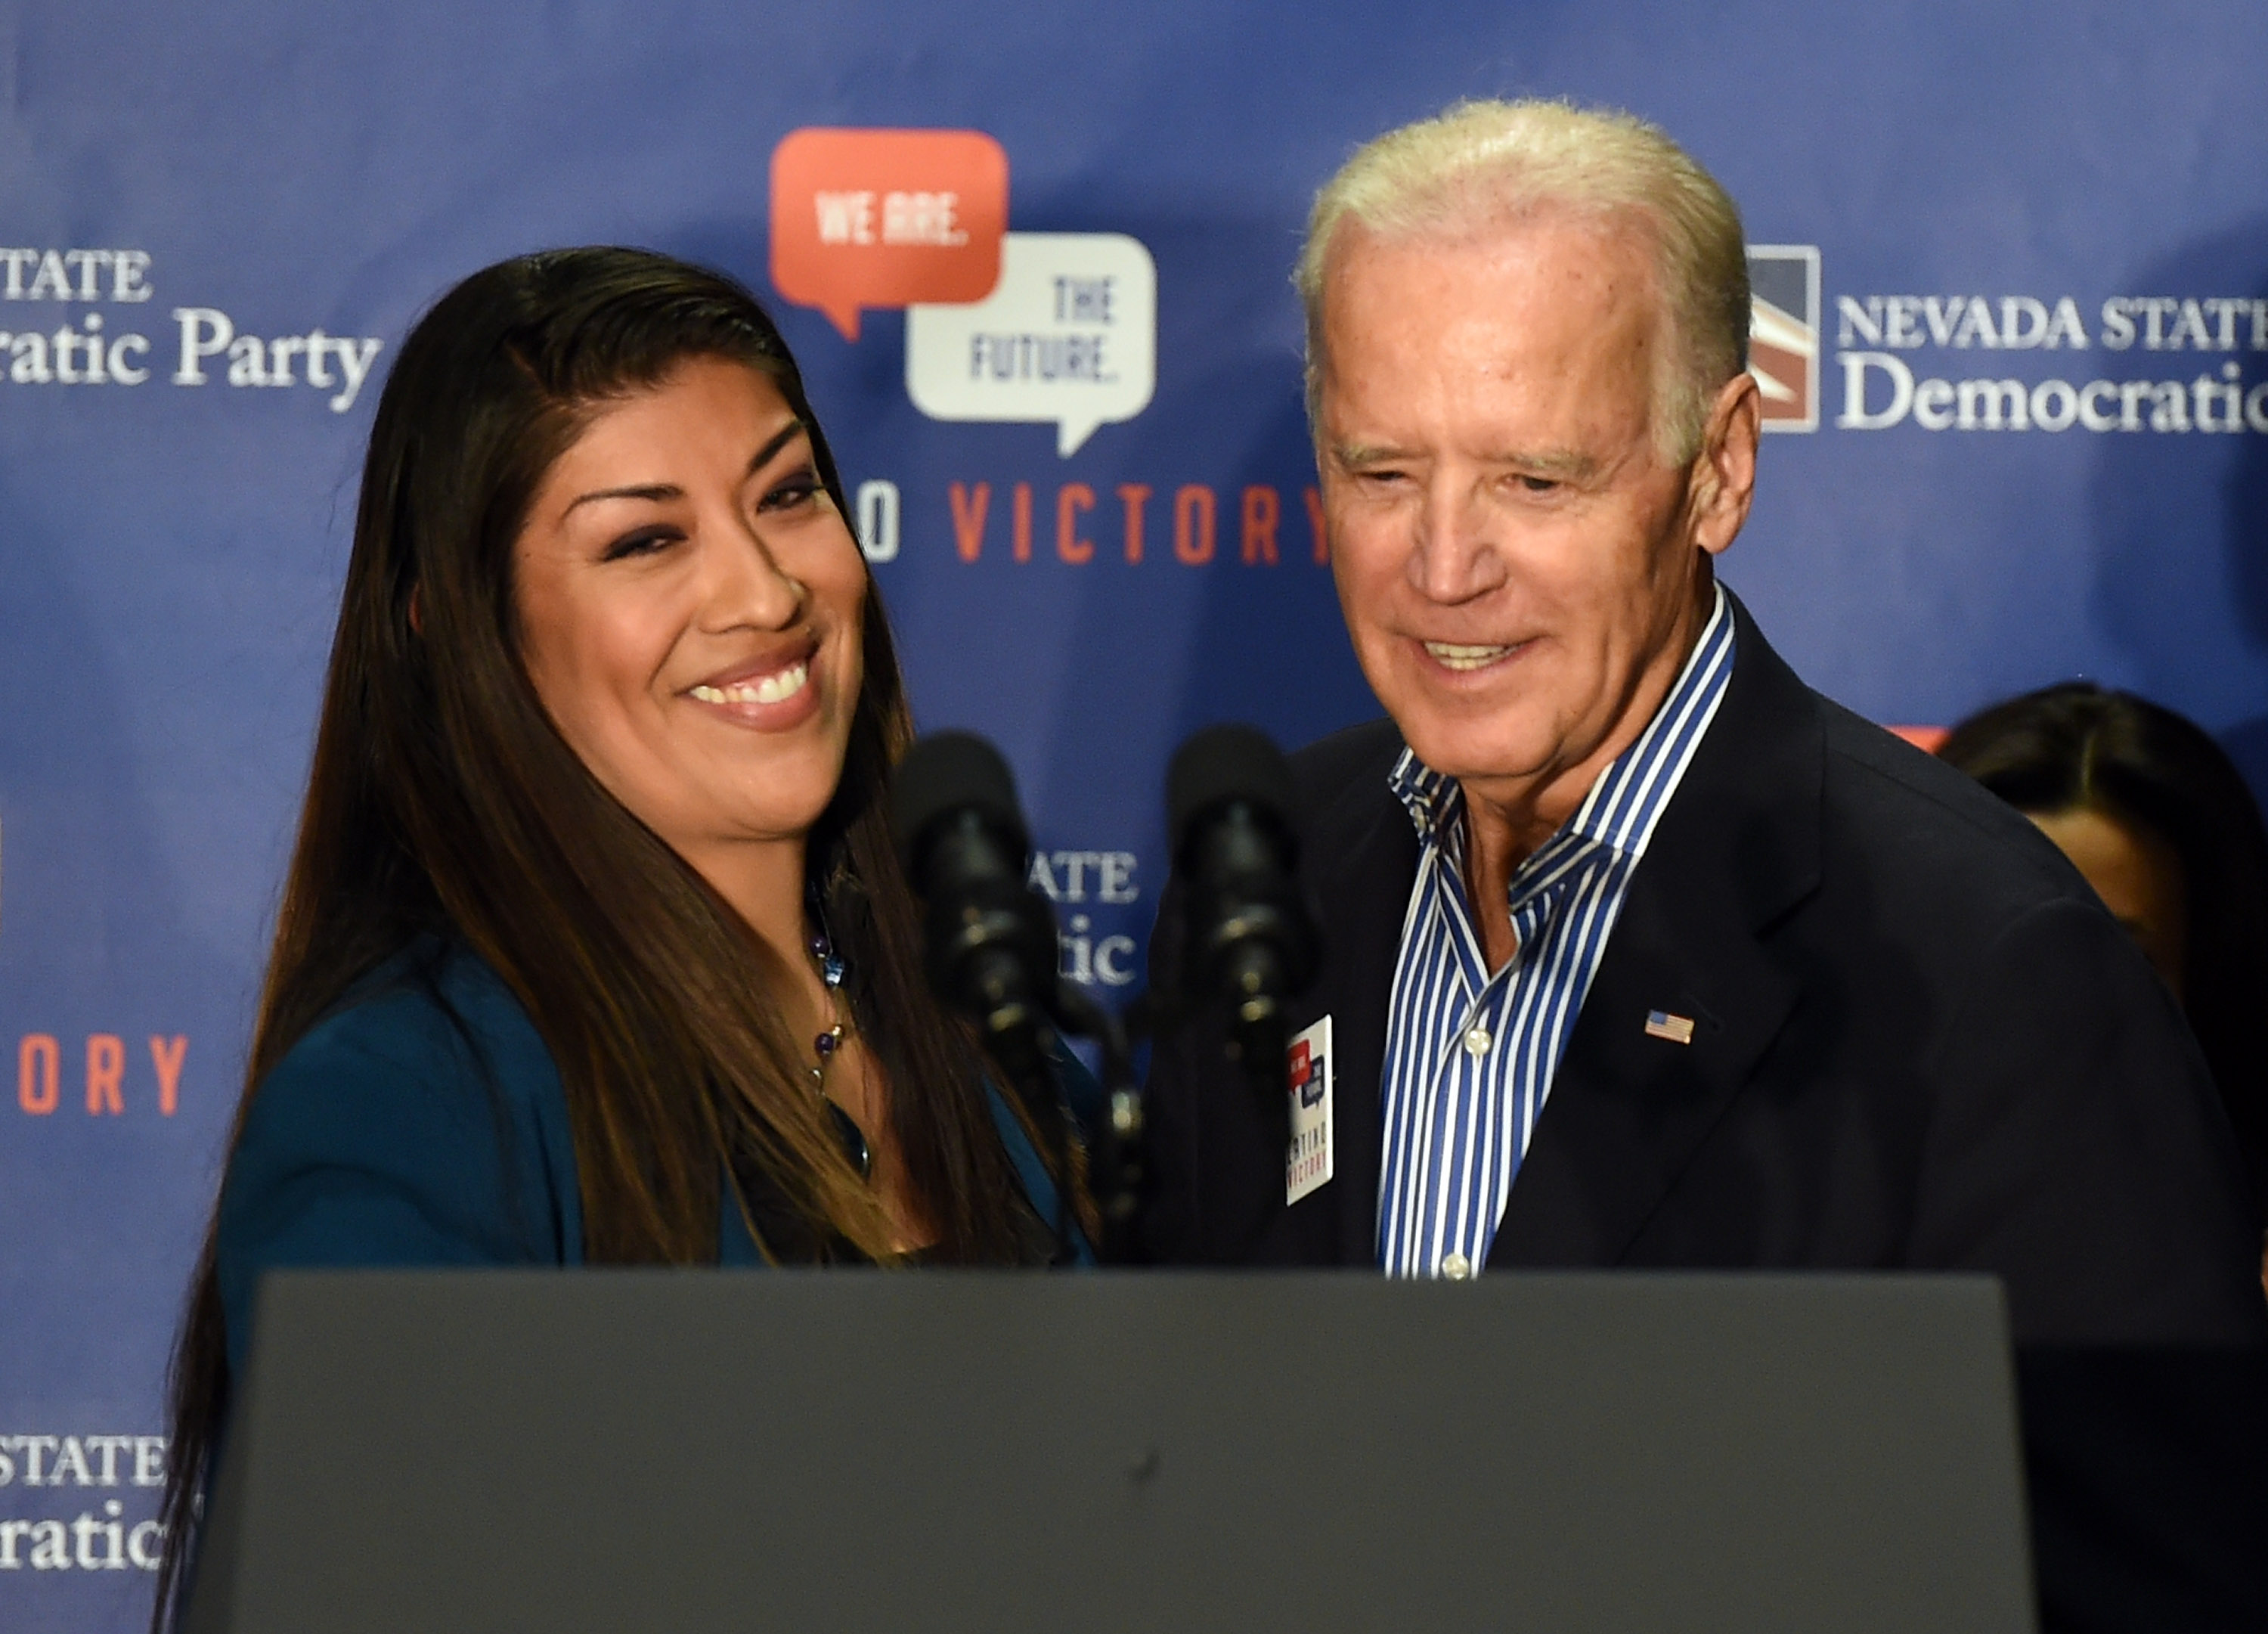 LAS VEGAS, NV - NOVEMBER 01: Democratic candidate for lieutenant governor and current Nevada Assemblywoman Lucy Flores (D-Las Vegas) (L) introduces U.S. Vice President Joe Biden at a get-out-the-vote rally at a union hall on November 1, 2014 in Las Vegas, Nevada. Biden is stumping for Nevada Democrats ahead of the November 4th election. (Photo by Ethan Miller/Getty Images)